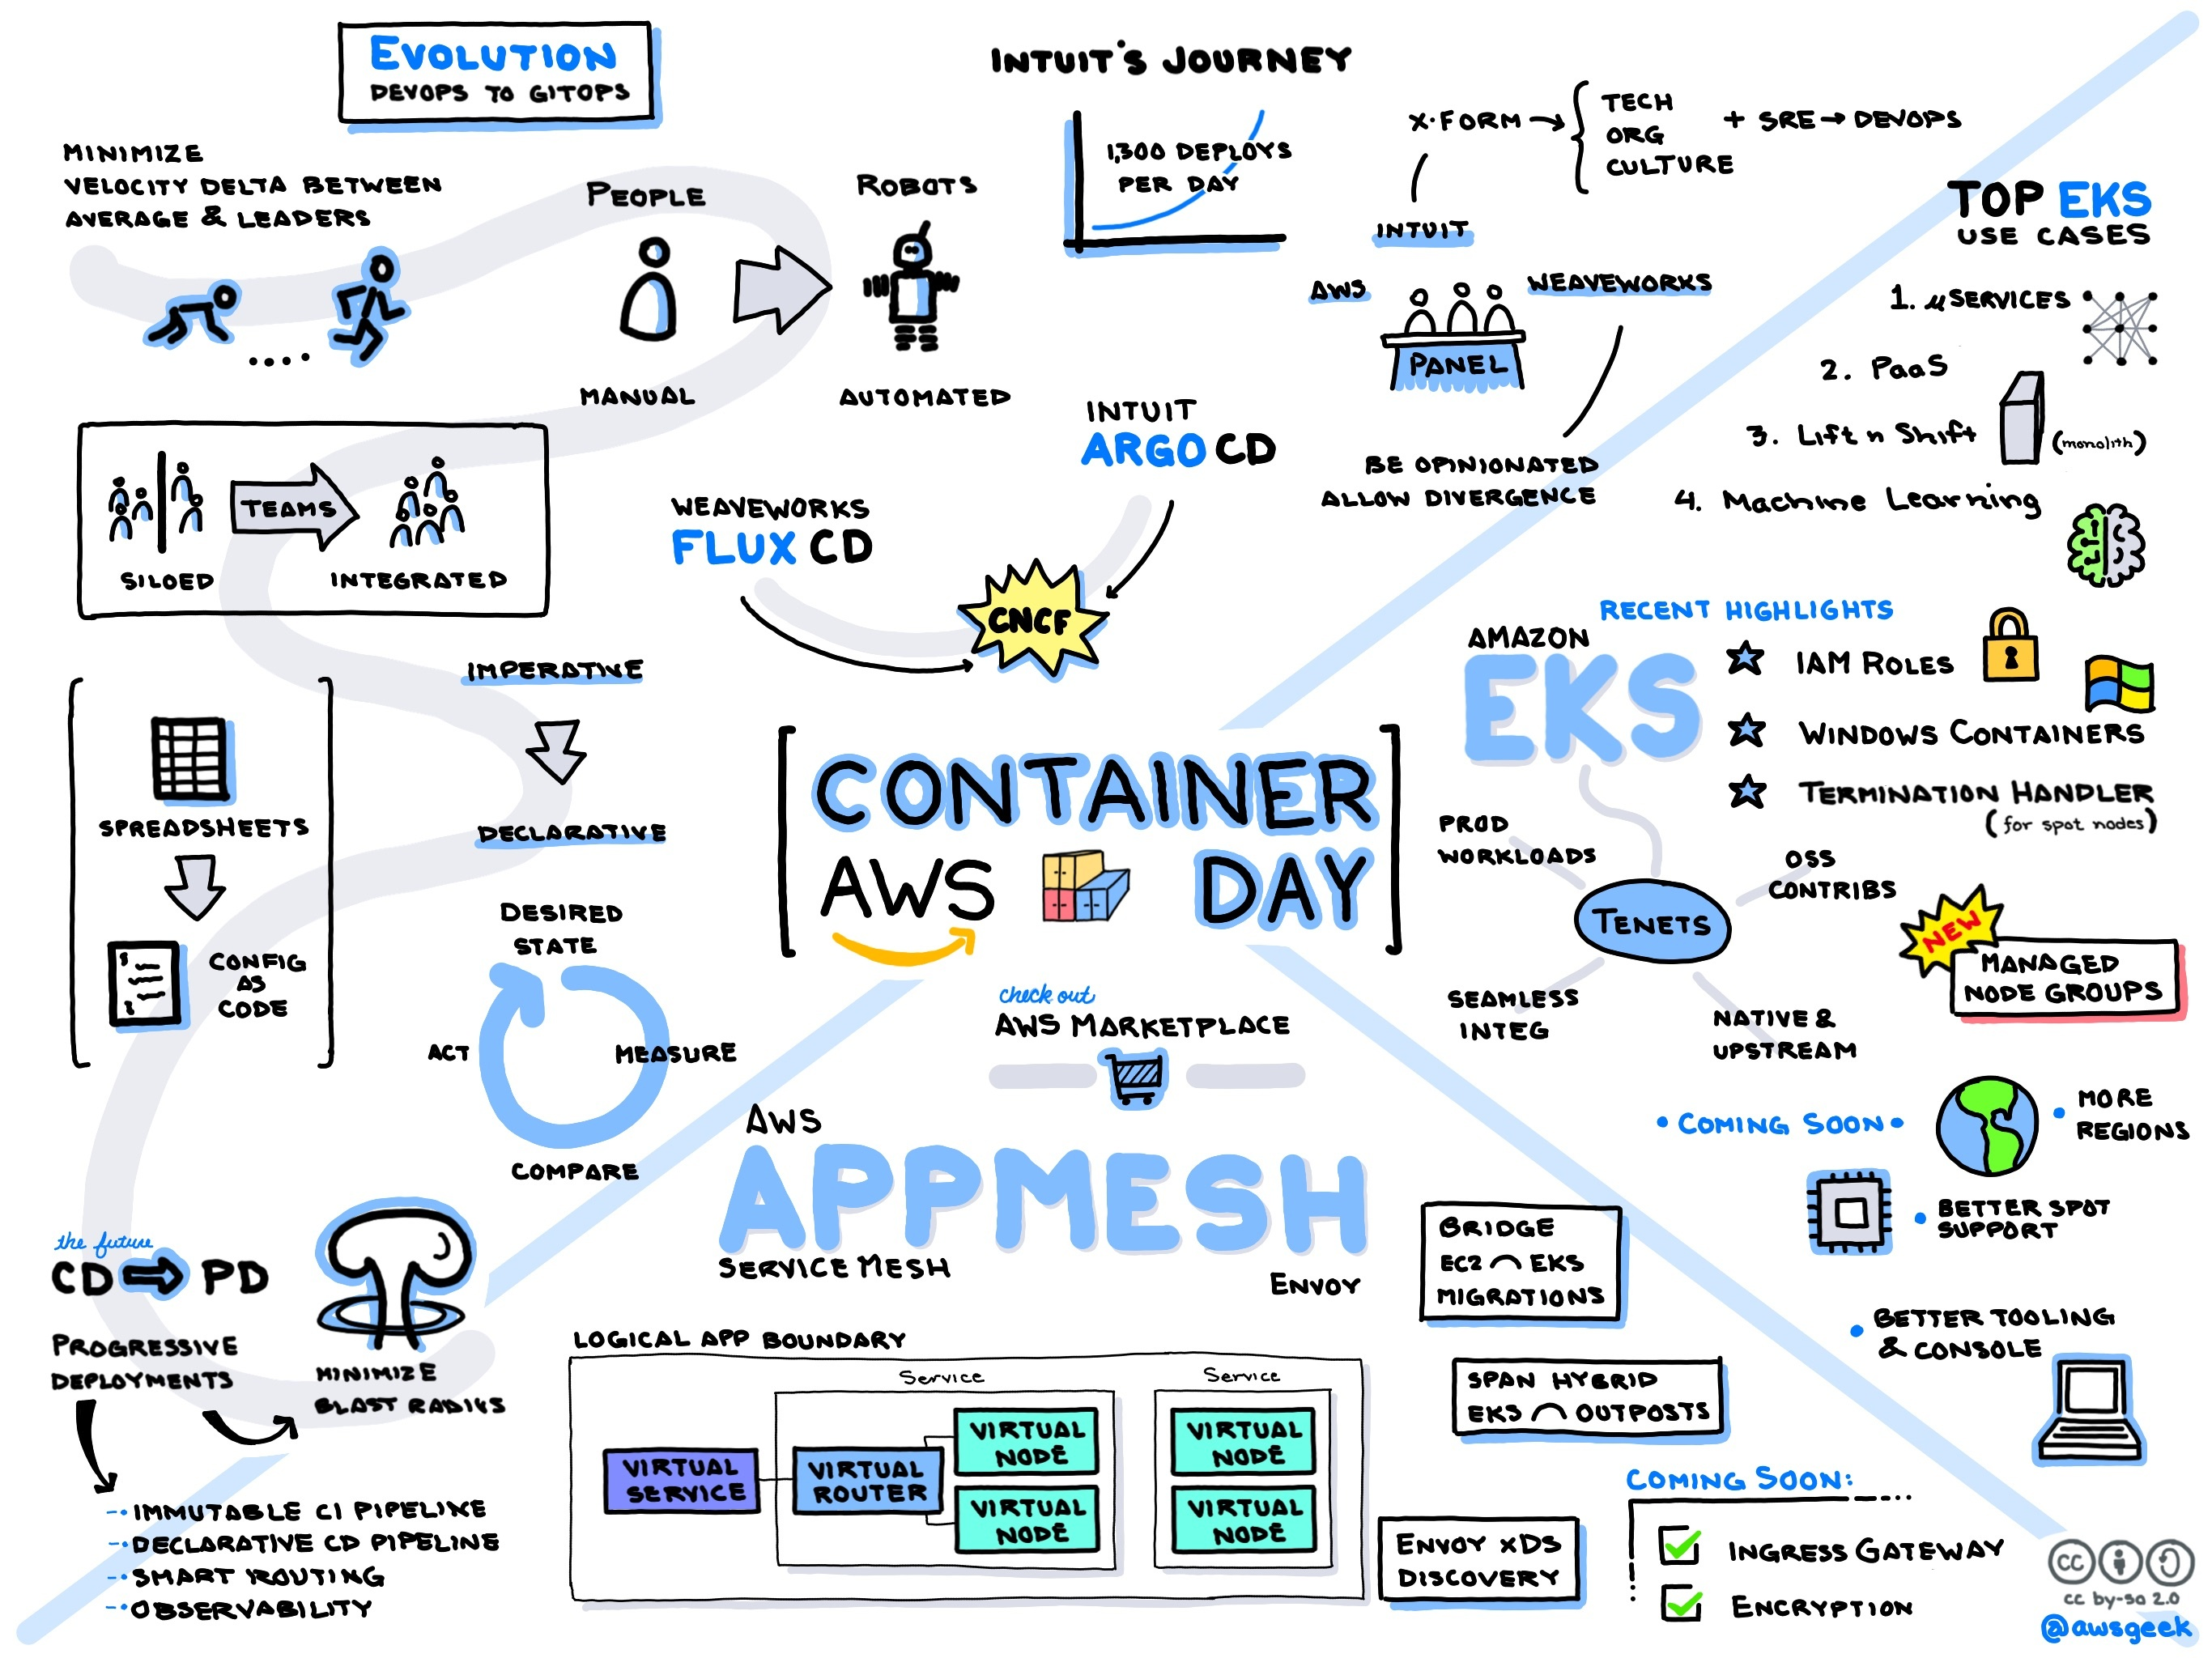 AWS-Container-Day.jpg